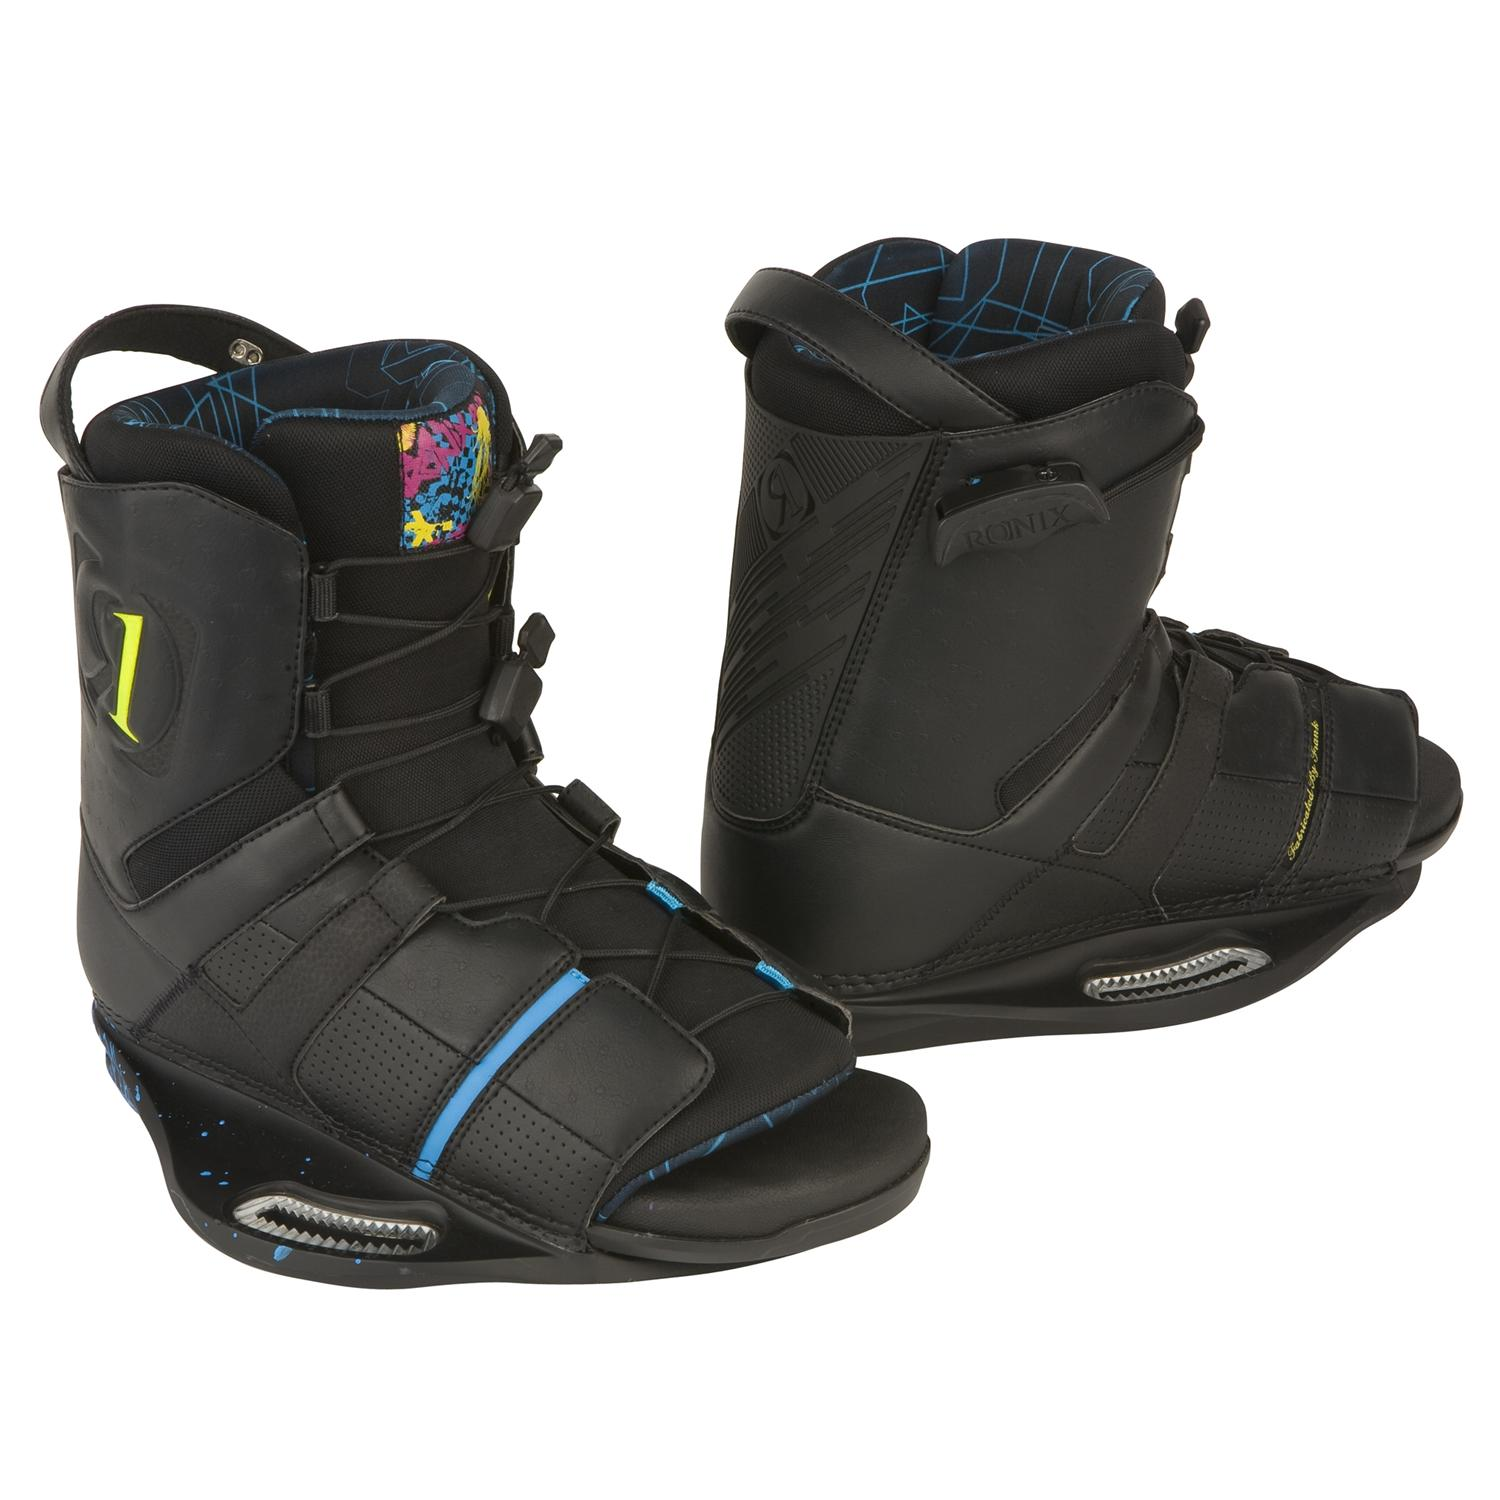 Ronix Frank Wakeboard Boots (Black) 2009